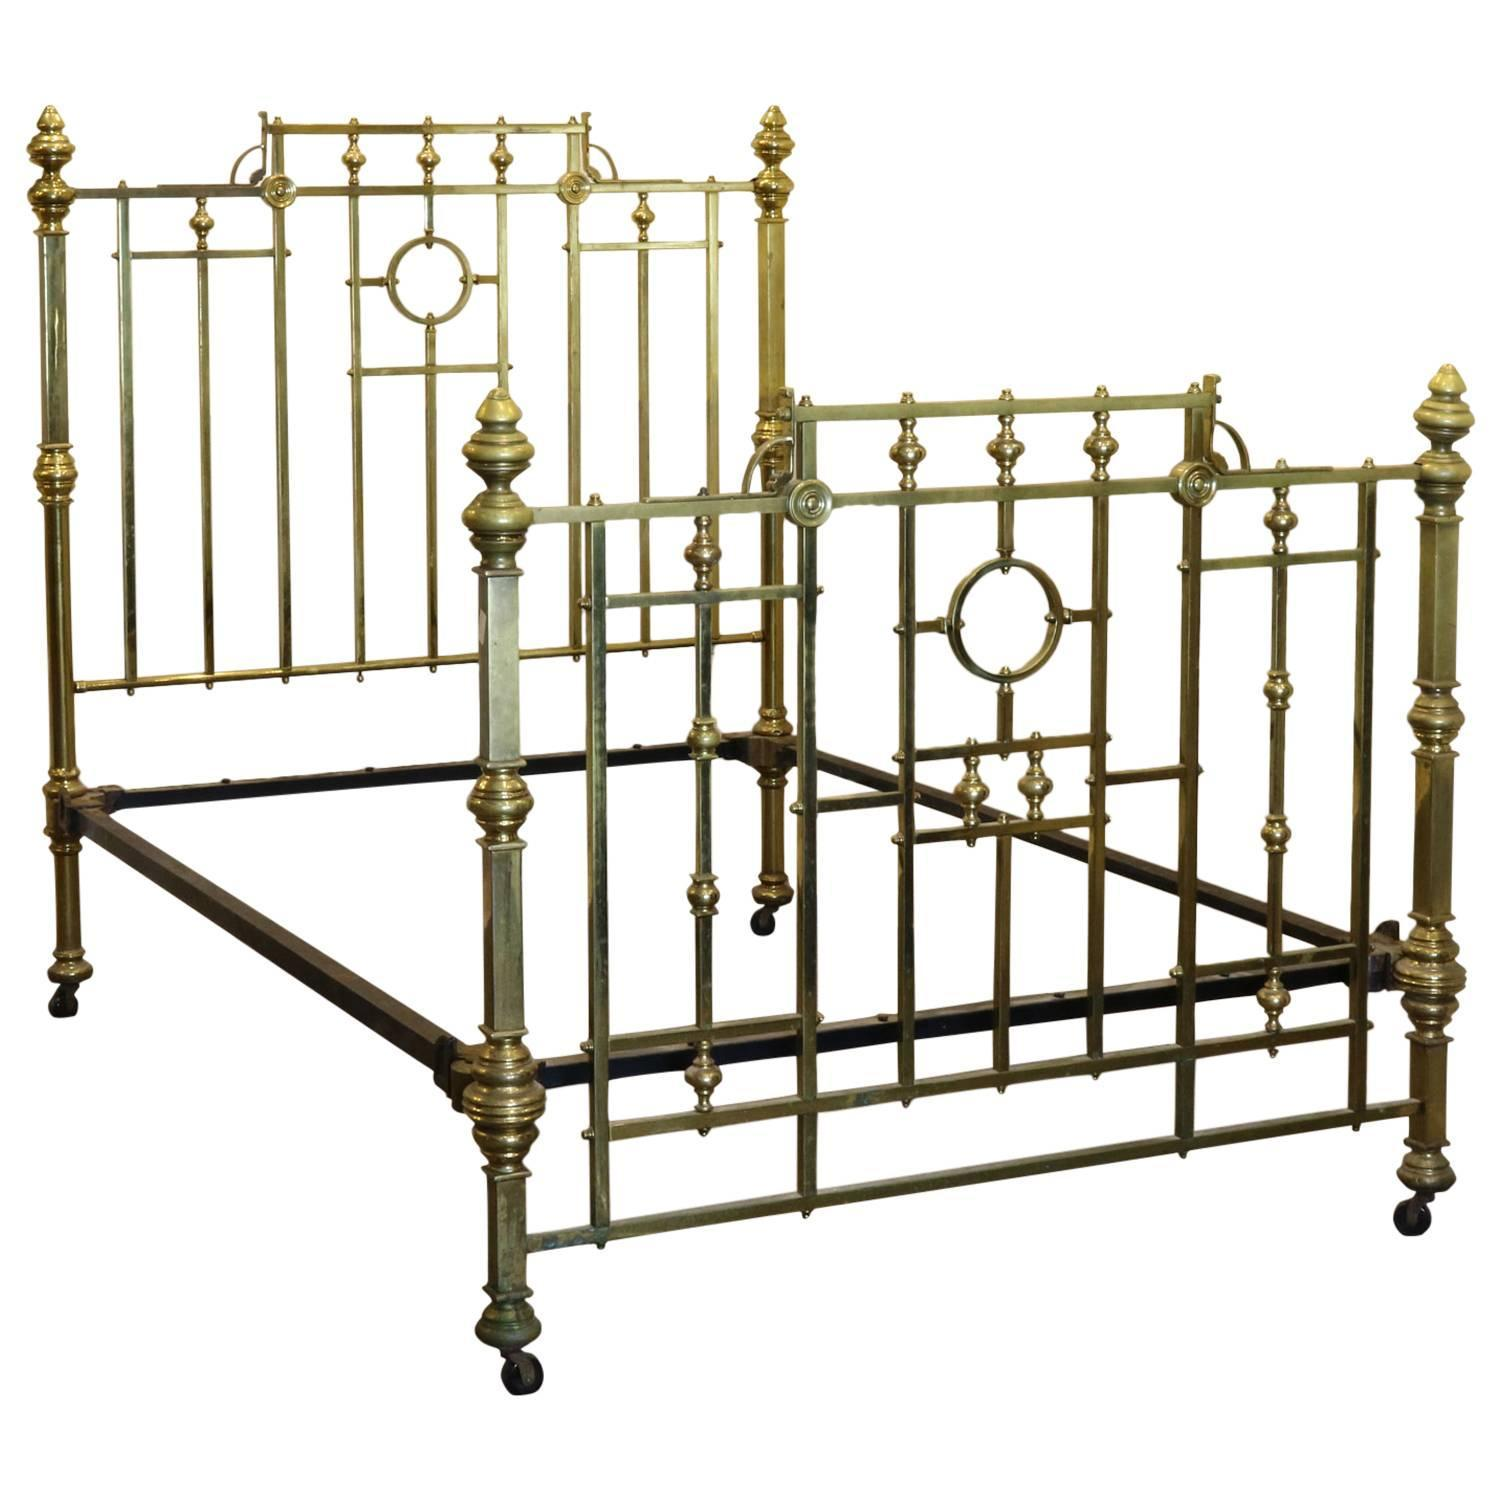 Edwardian All Brass Bed, MD38 For Sale at 1stdibs